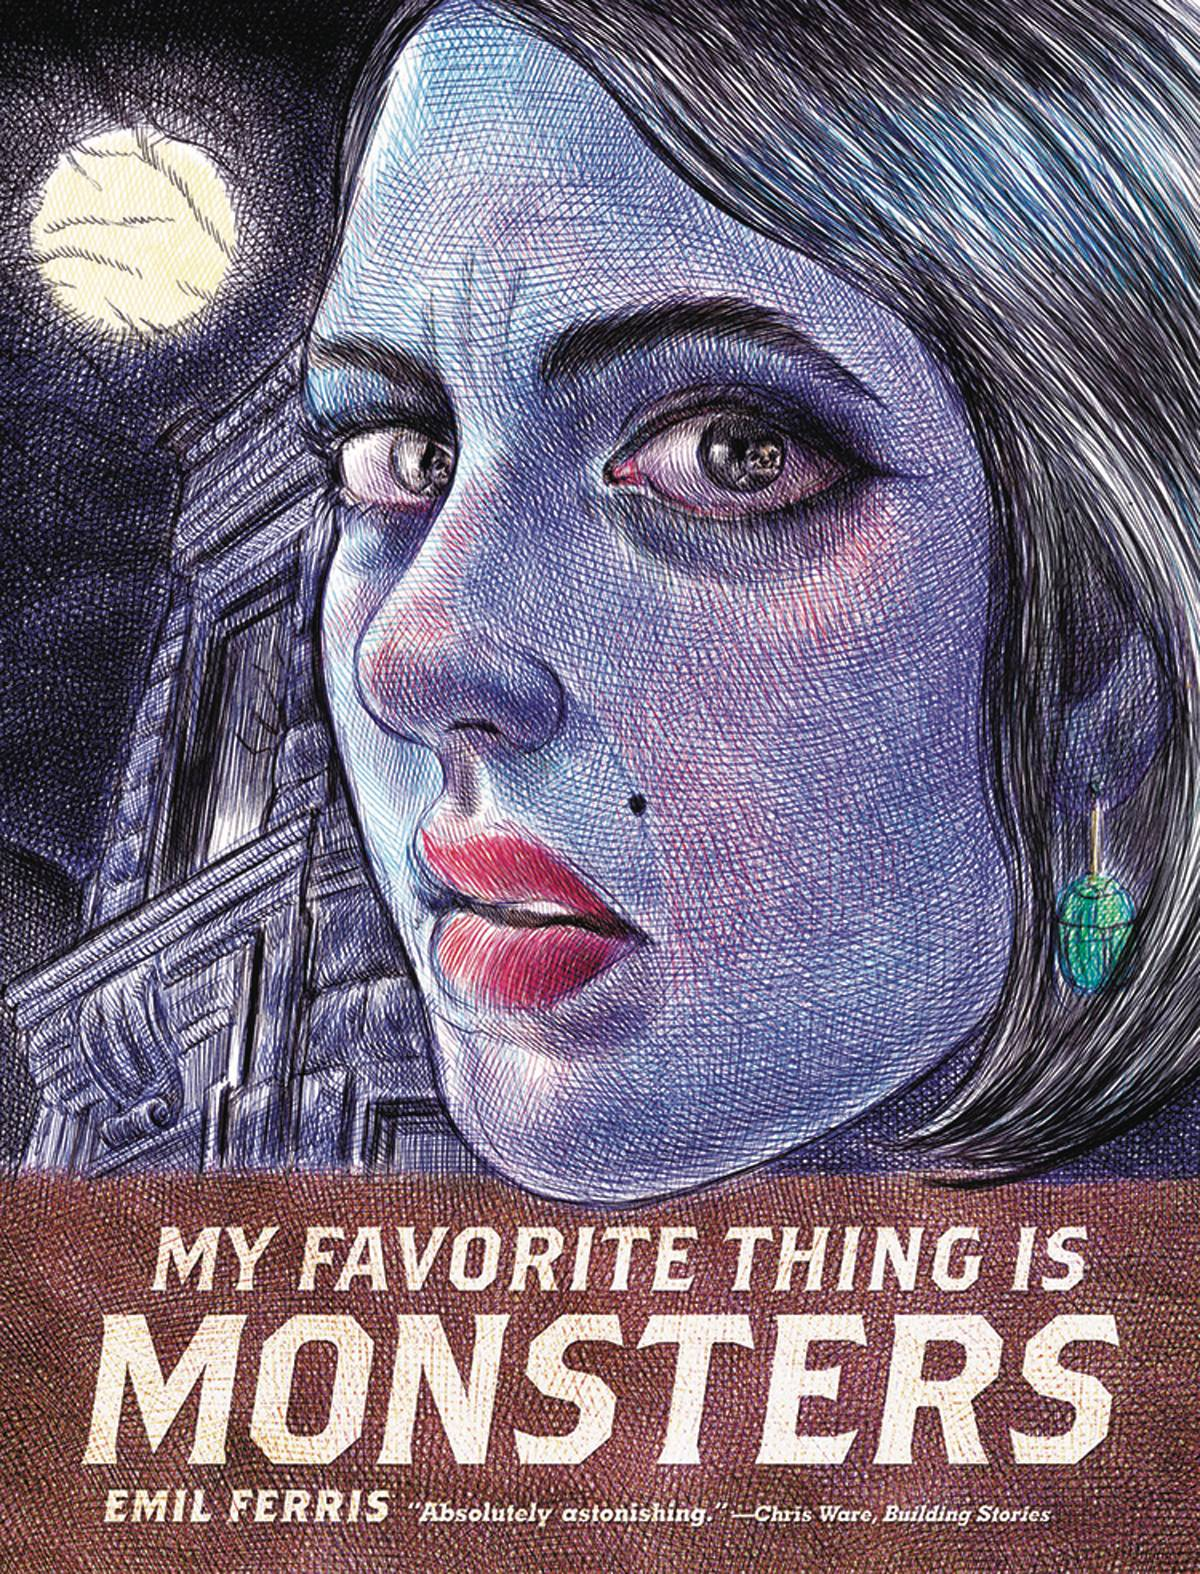 My Favorite Thing is Monsters Vol 1 - Mike's PickEmil Ferris' debut graphic novel is an absolute masterpiece.Eschewing traditional comic book story mechanics, the tale unfolds in the form of a young girl's sketchbook/journal.10-year-old Karen Reyes loves monsters and even imagines herself as a werewolf within the pages of her journal.She draws versions of monster magazine covers that function as chapter breaks for the reader.She's also investigating the murder of her neighbor, a Holocaust survivor, while dealing with family issues and day to day life in Civil Rights era Chicago.The theme of fictional monsters contrasted against real life monsters is cleverly explored in Karen's journal entries.Additionally, the artwork looks to be entirely done in intricate pen and ink.MY FAVORITE THING IS MONSTERS announces a fantastic new talent to the medium.It's easily one of the best books I've read within the last five years.Book one is available now with the concluding volume currently scheduled for an April release.